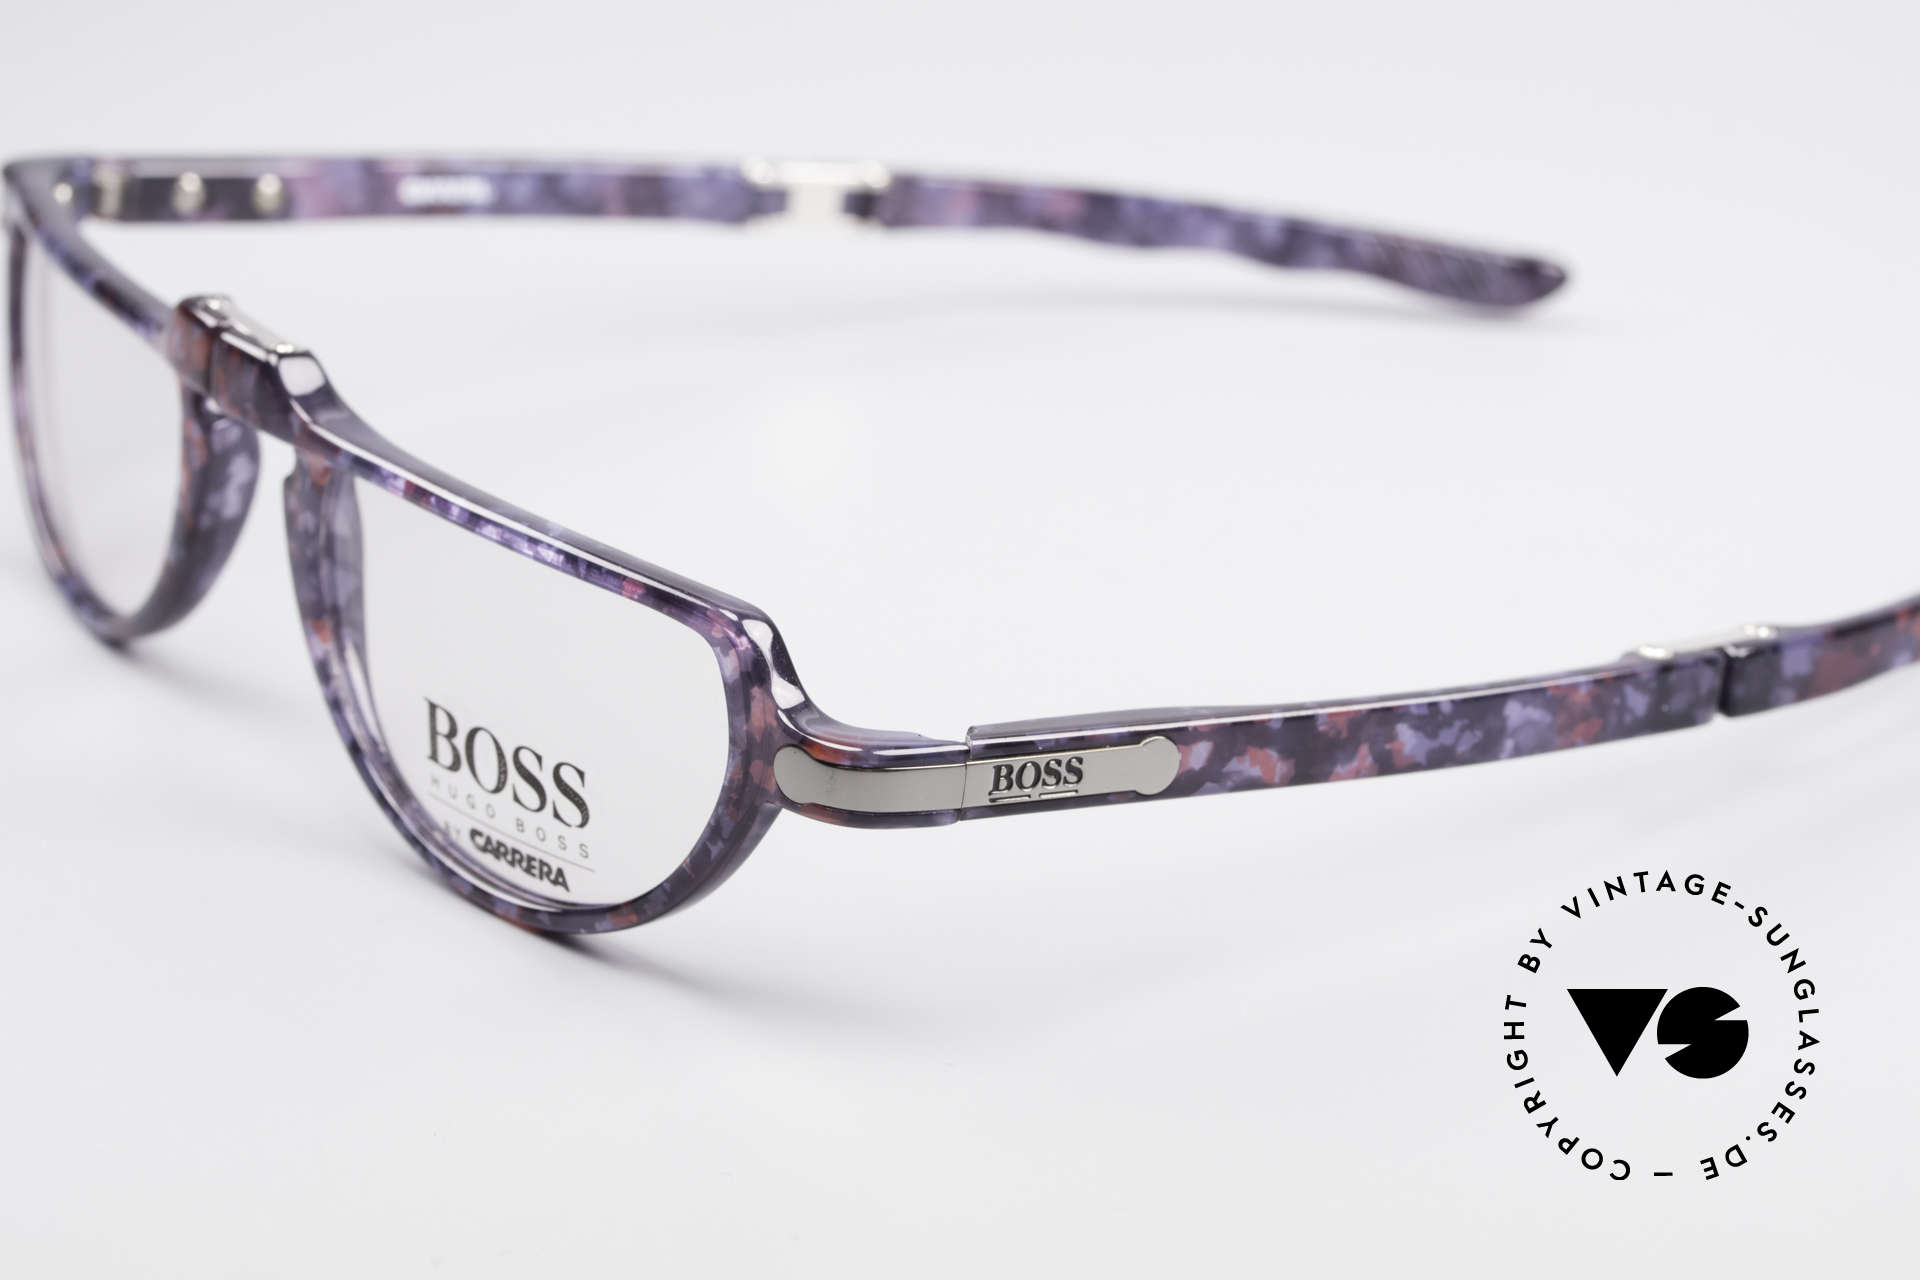 BOSS 5103 Folding Reading Eyeglasses, typical 'Optyl shine' - as brilliant as just produced, Made for Men and Women